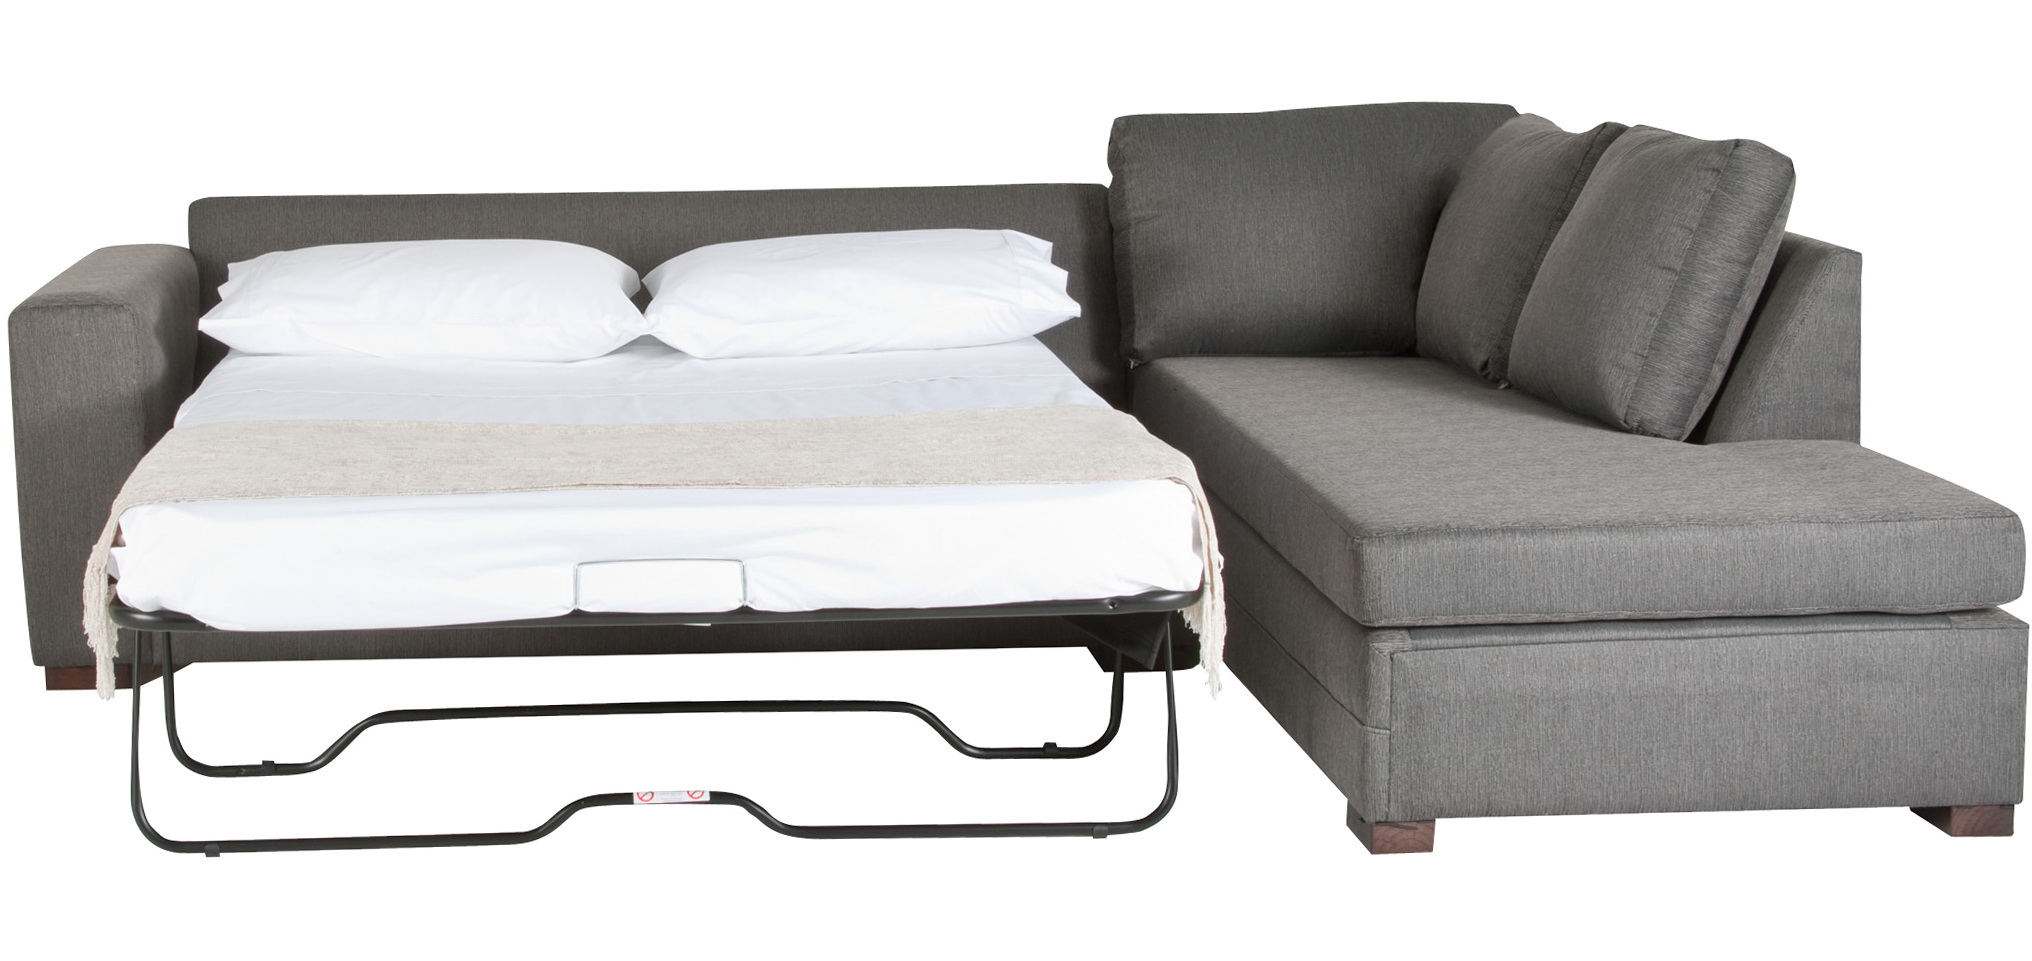 Best Sleeper Sofa 2014